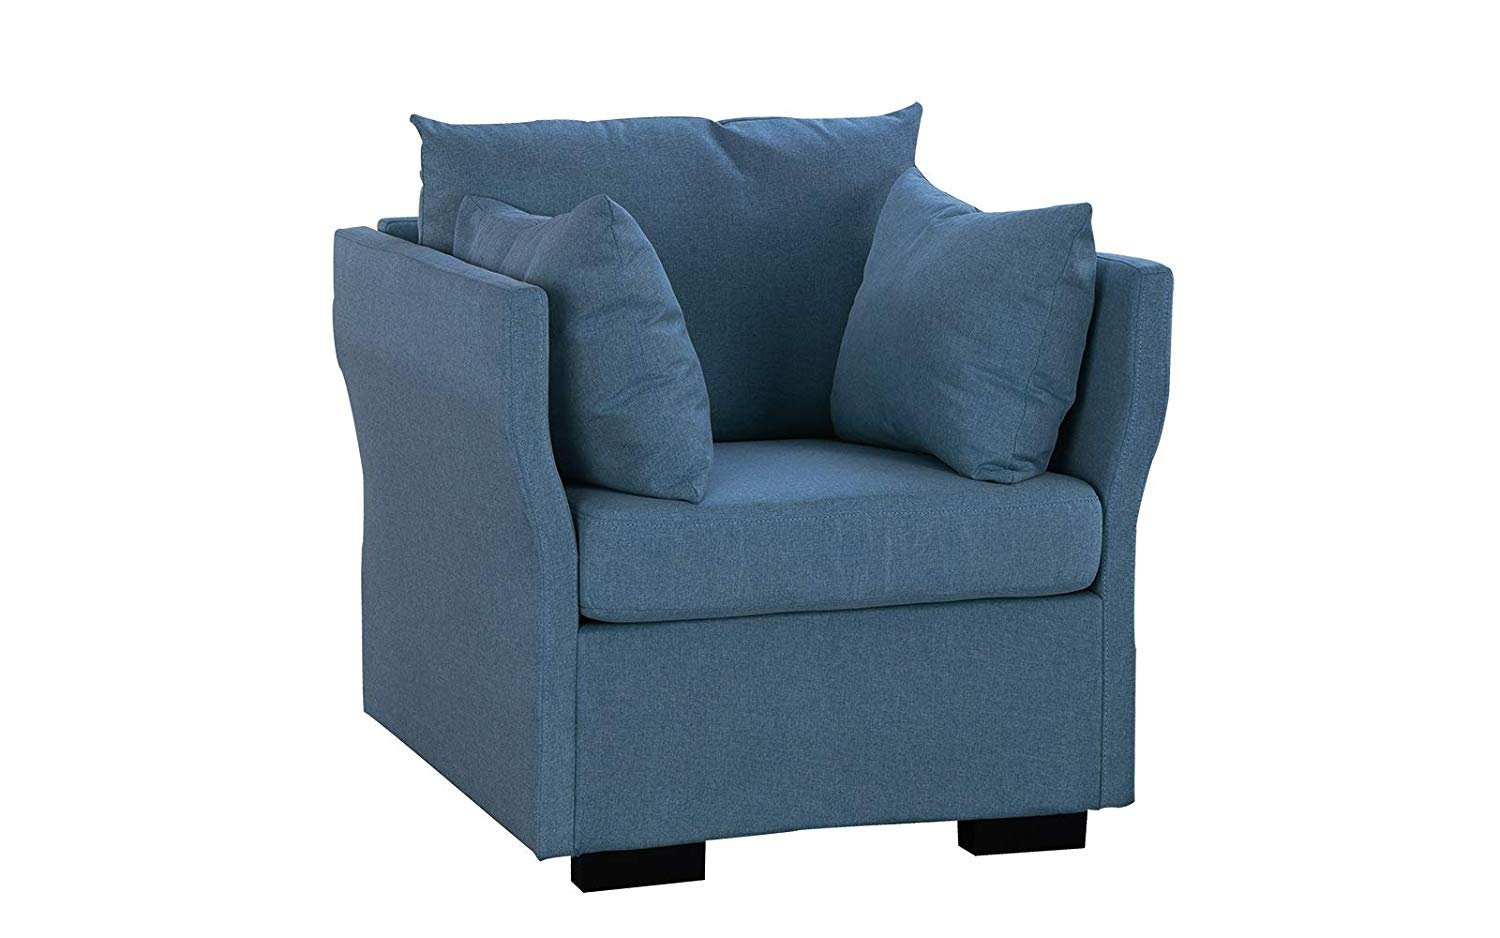 Standard Living Room Armchair Classic Living Room Fabric Accent